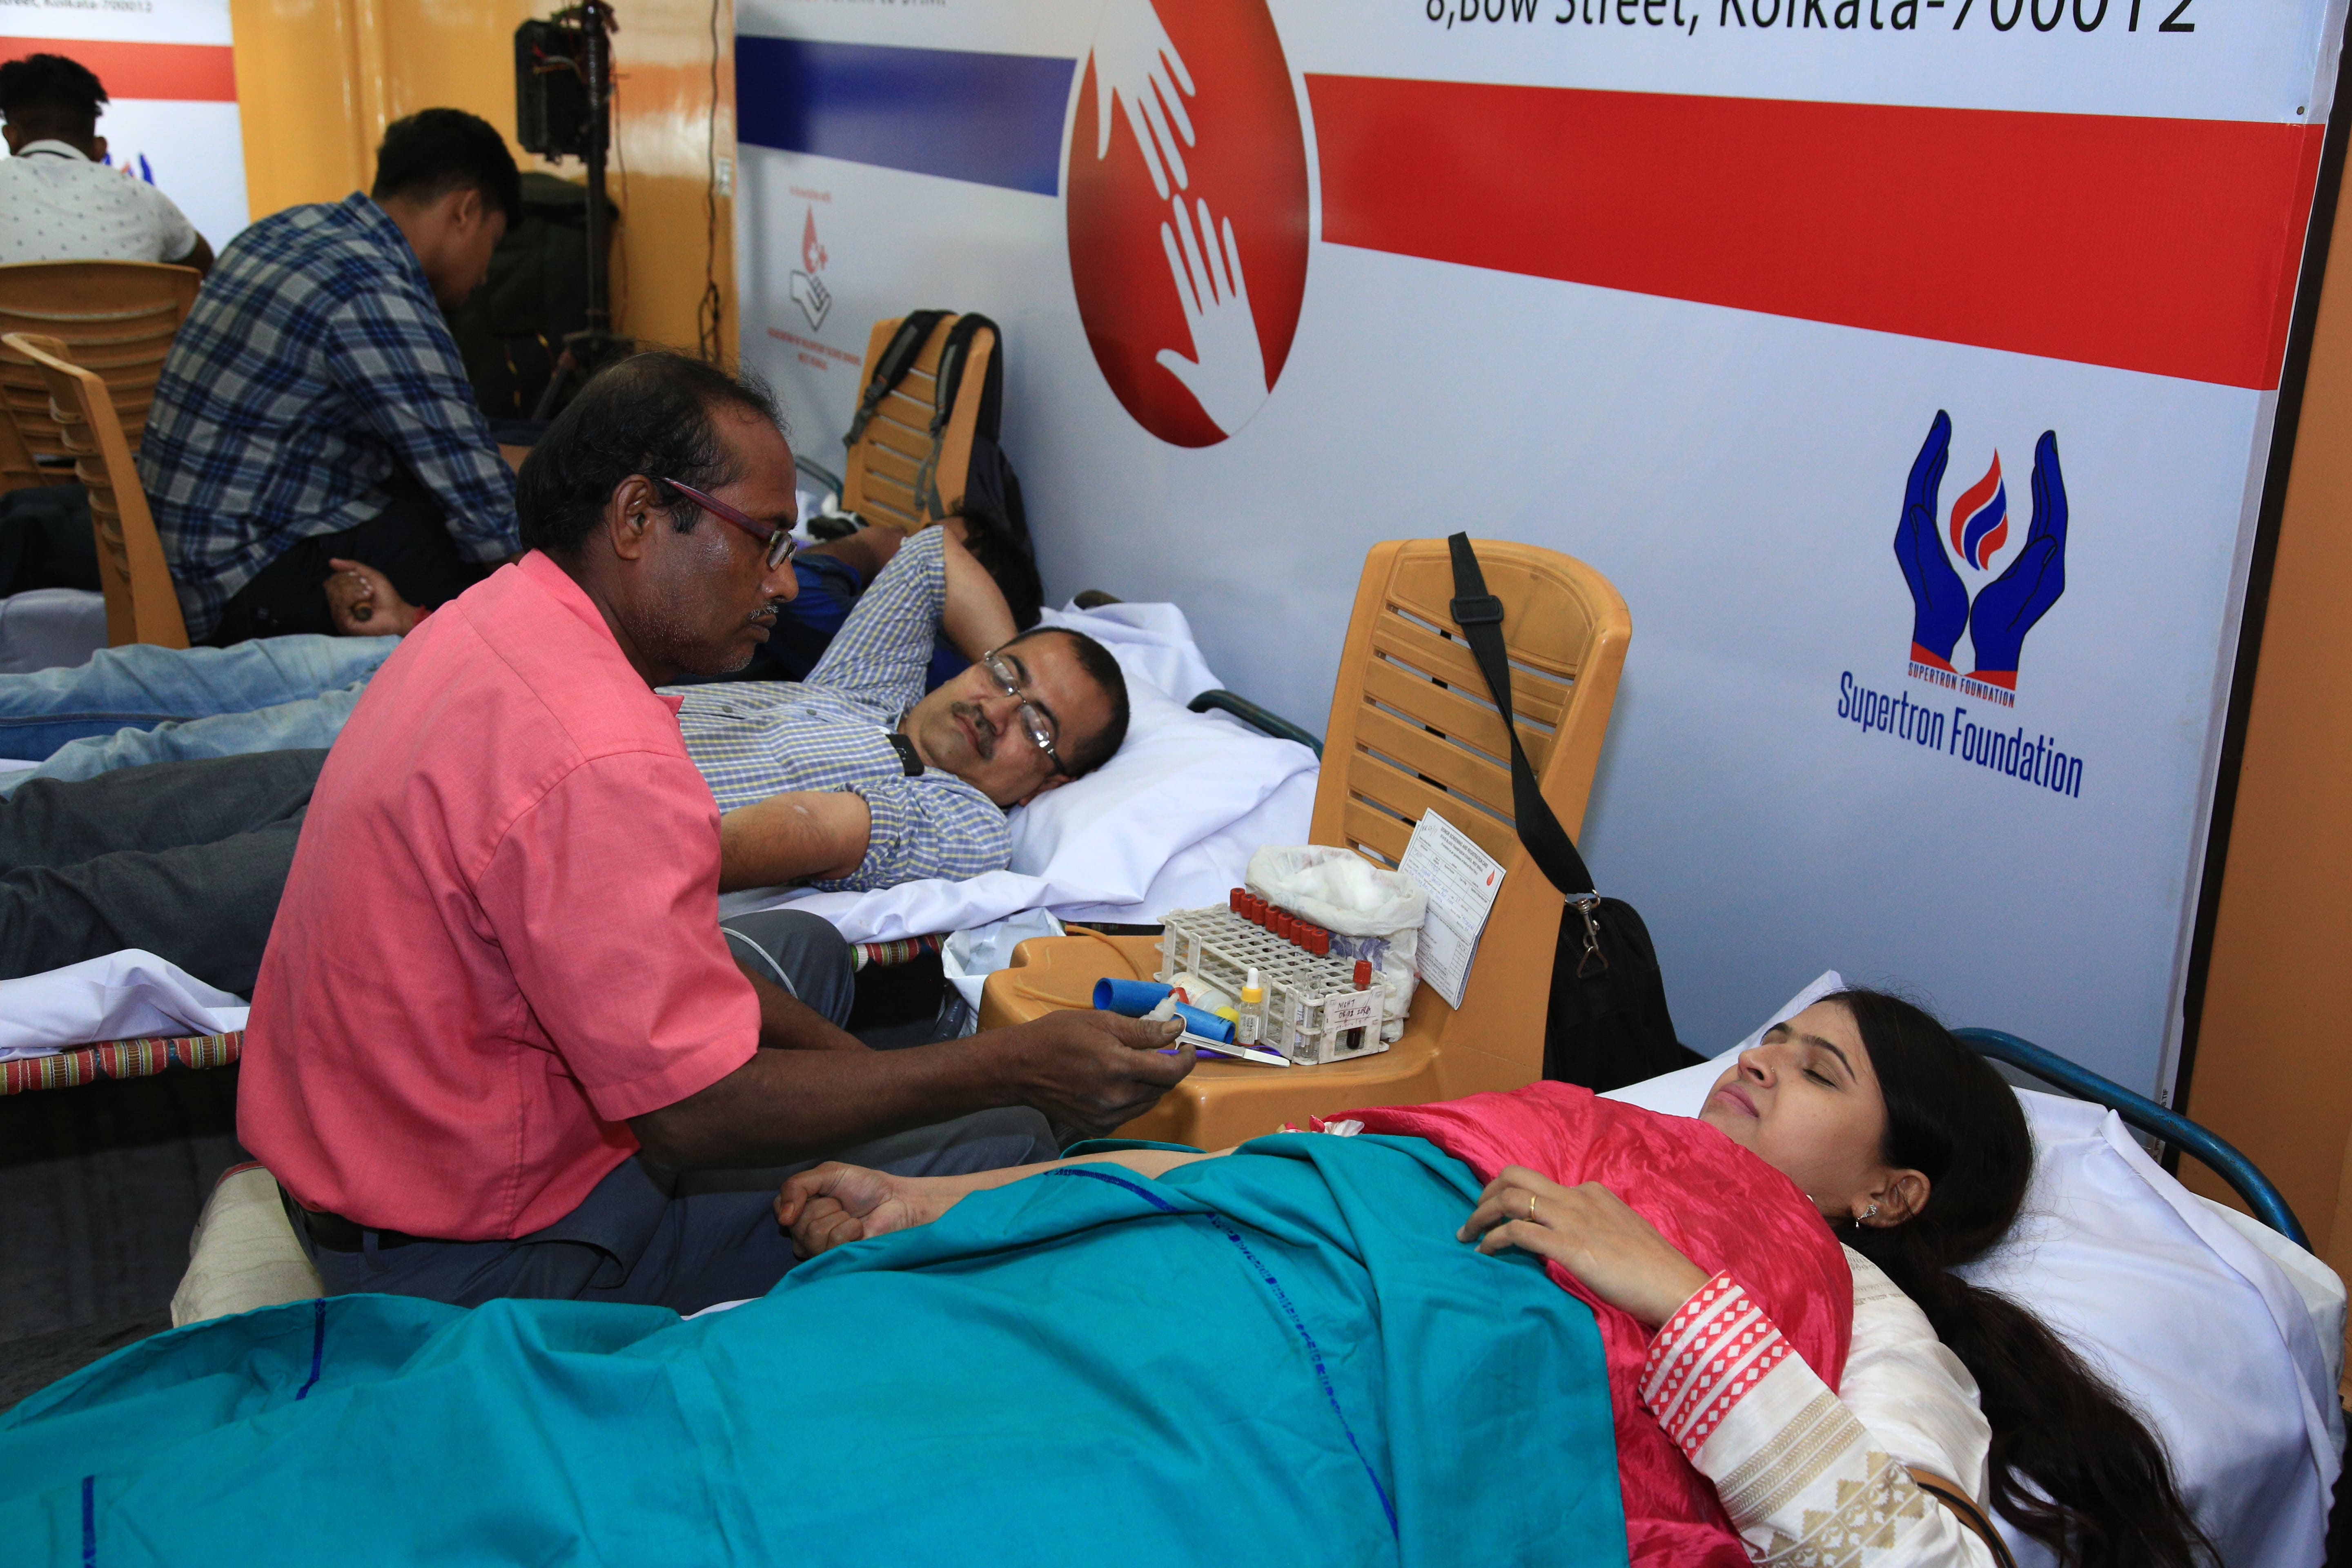 https://www.supertronindia.com/wp-content/uploads/2019/06/Blood-Donation-Camp-10-min.jpg